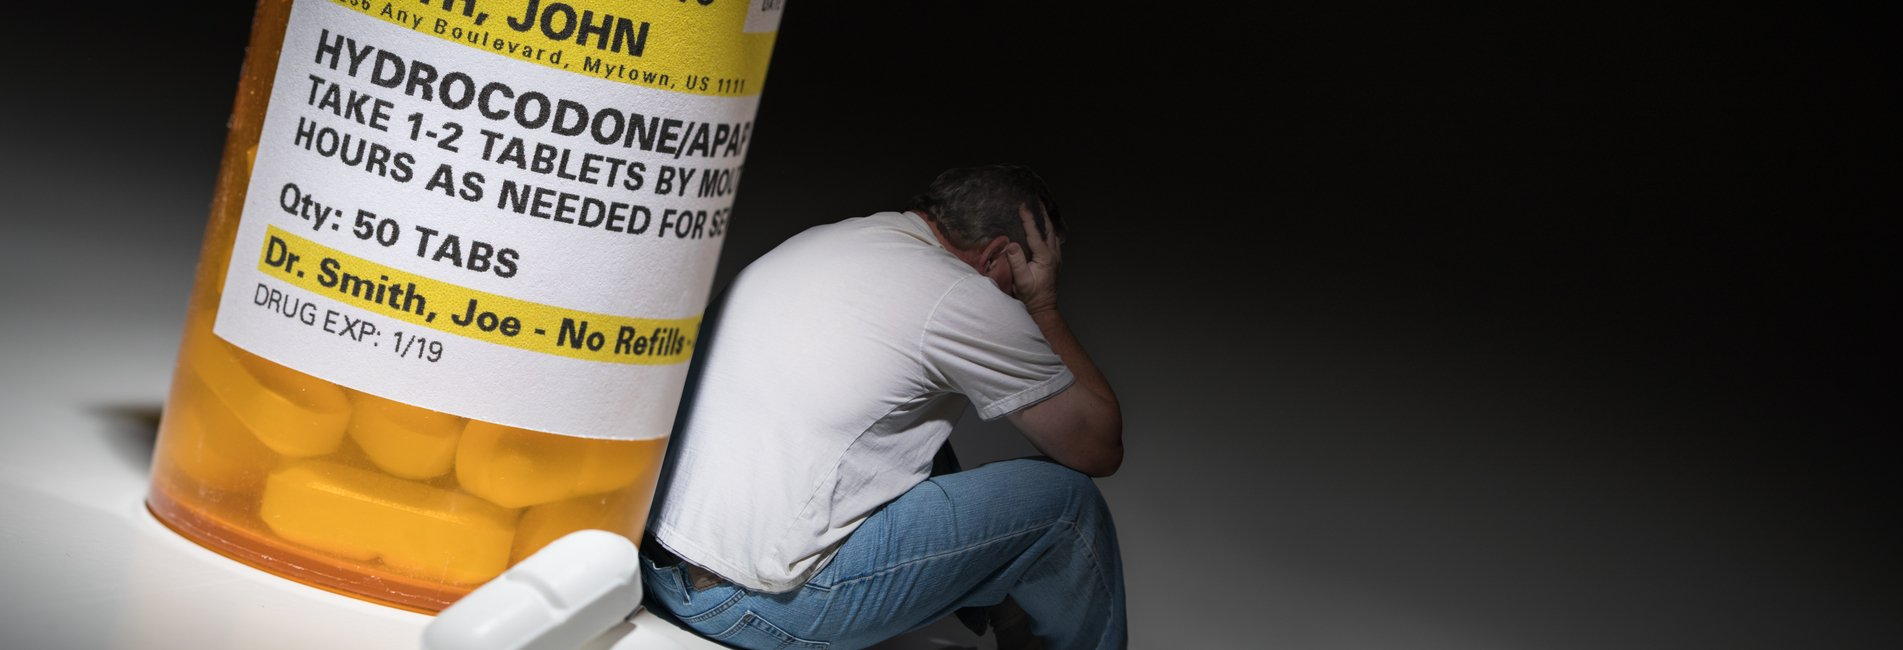 Opioid Addiction and Our Nation Resurgence - A man is sitting next to a large bottle of Hydrocodone pills with his head in his hands because of his frustration with his opioid addiction.